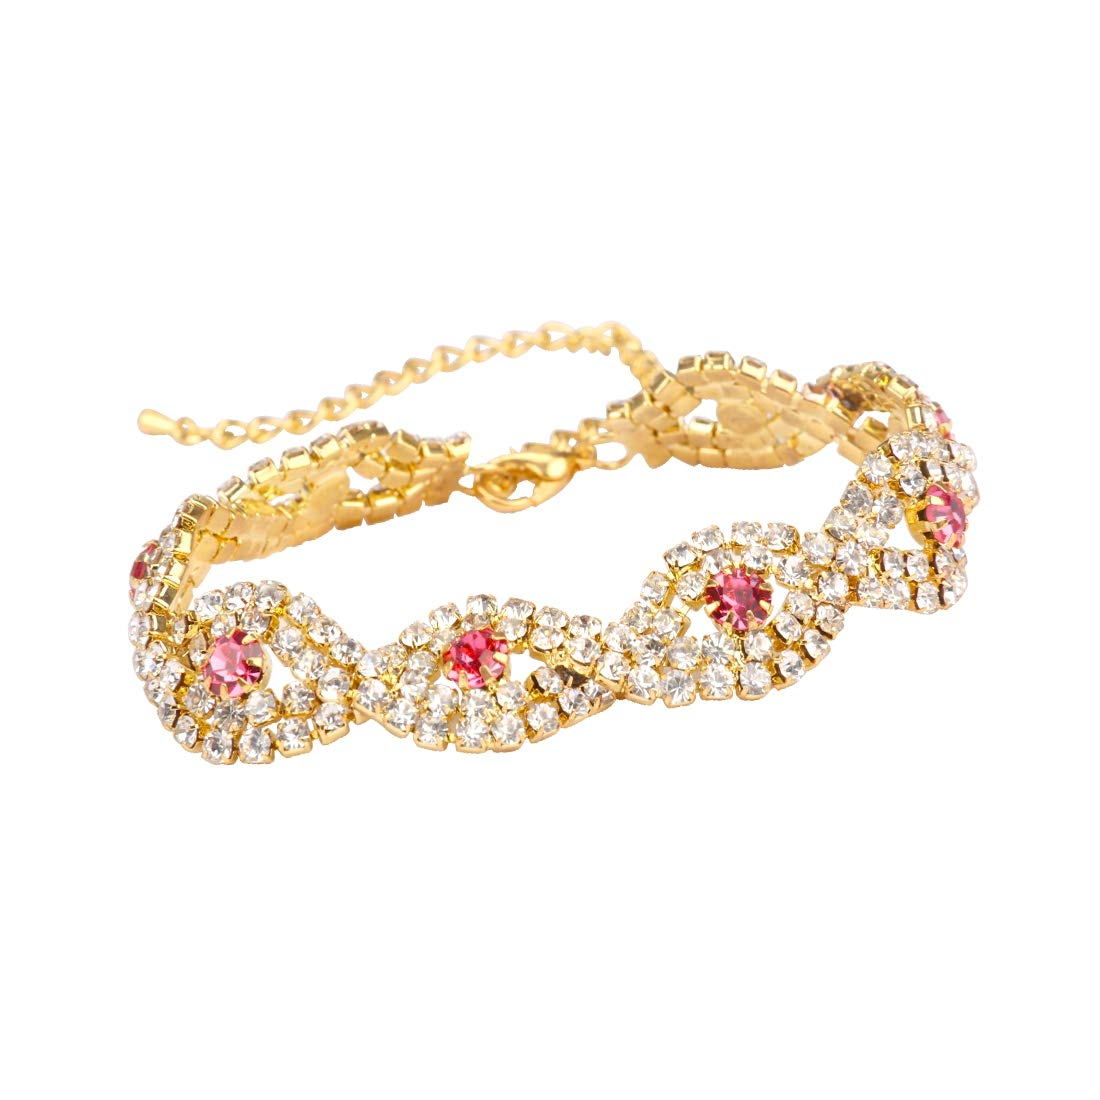 5fb5cde6c34 Amazon.com: YISSION Women's Silver/Gold Plated Crystal Link ...